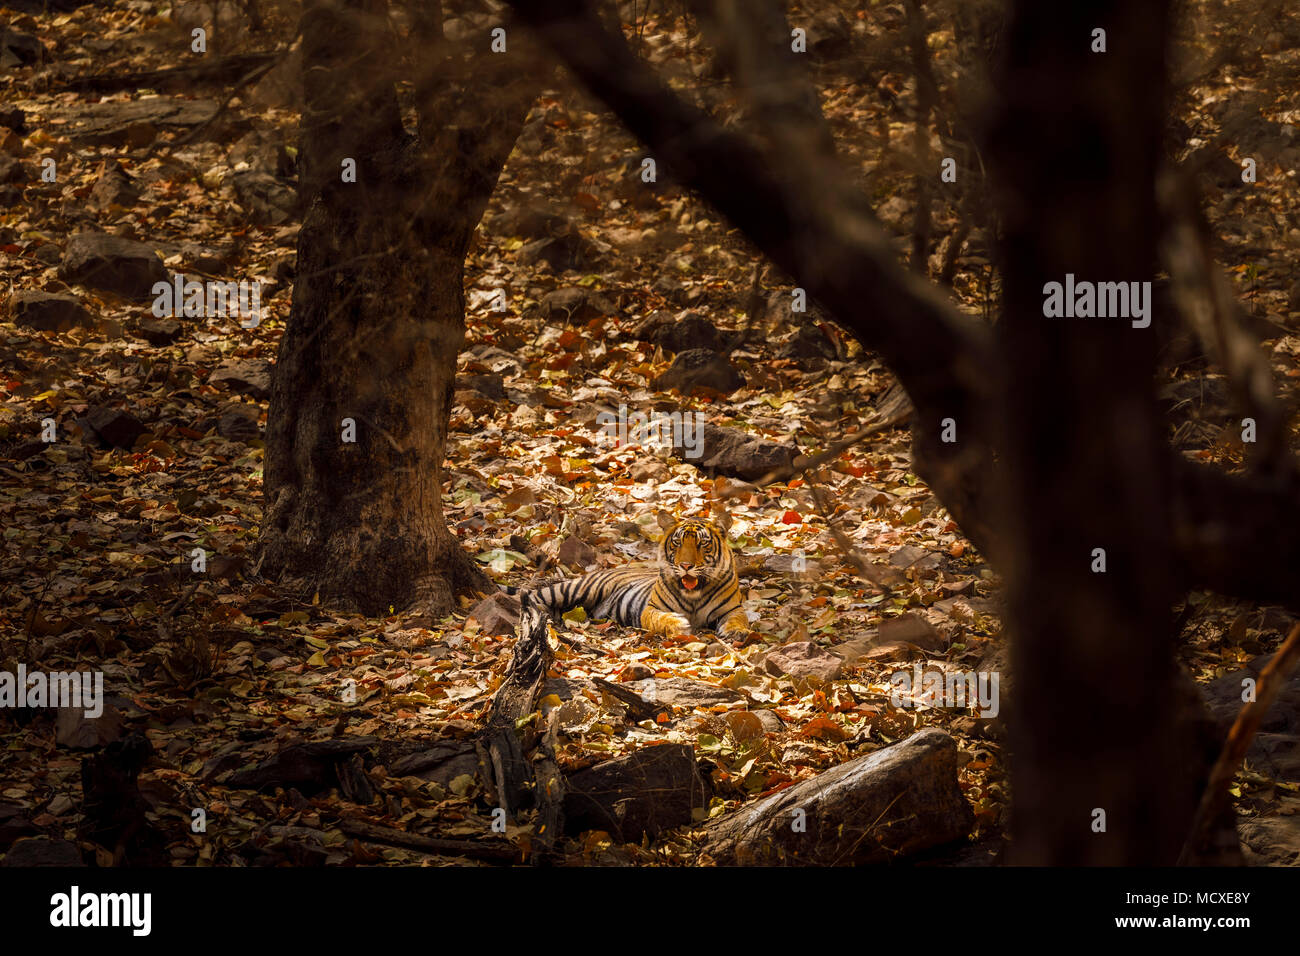 Bengal tiger (Panthera tigris) laying down at rest camouflaged in dappled light in woodland, Ranthambore National Park, Rajasthan, northern India - Stock Image